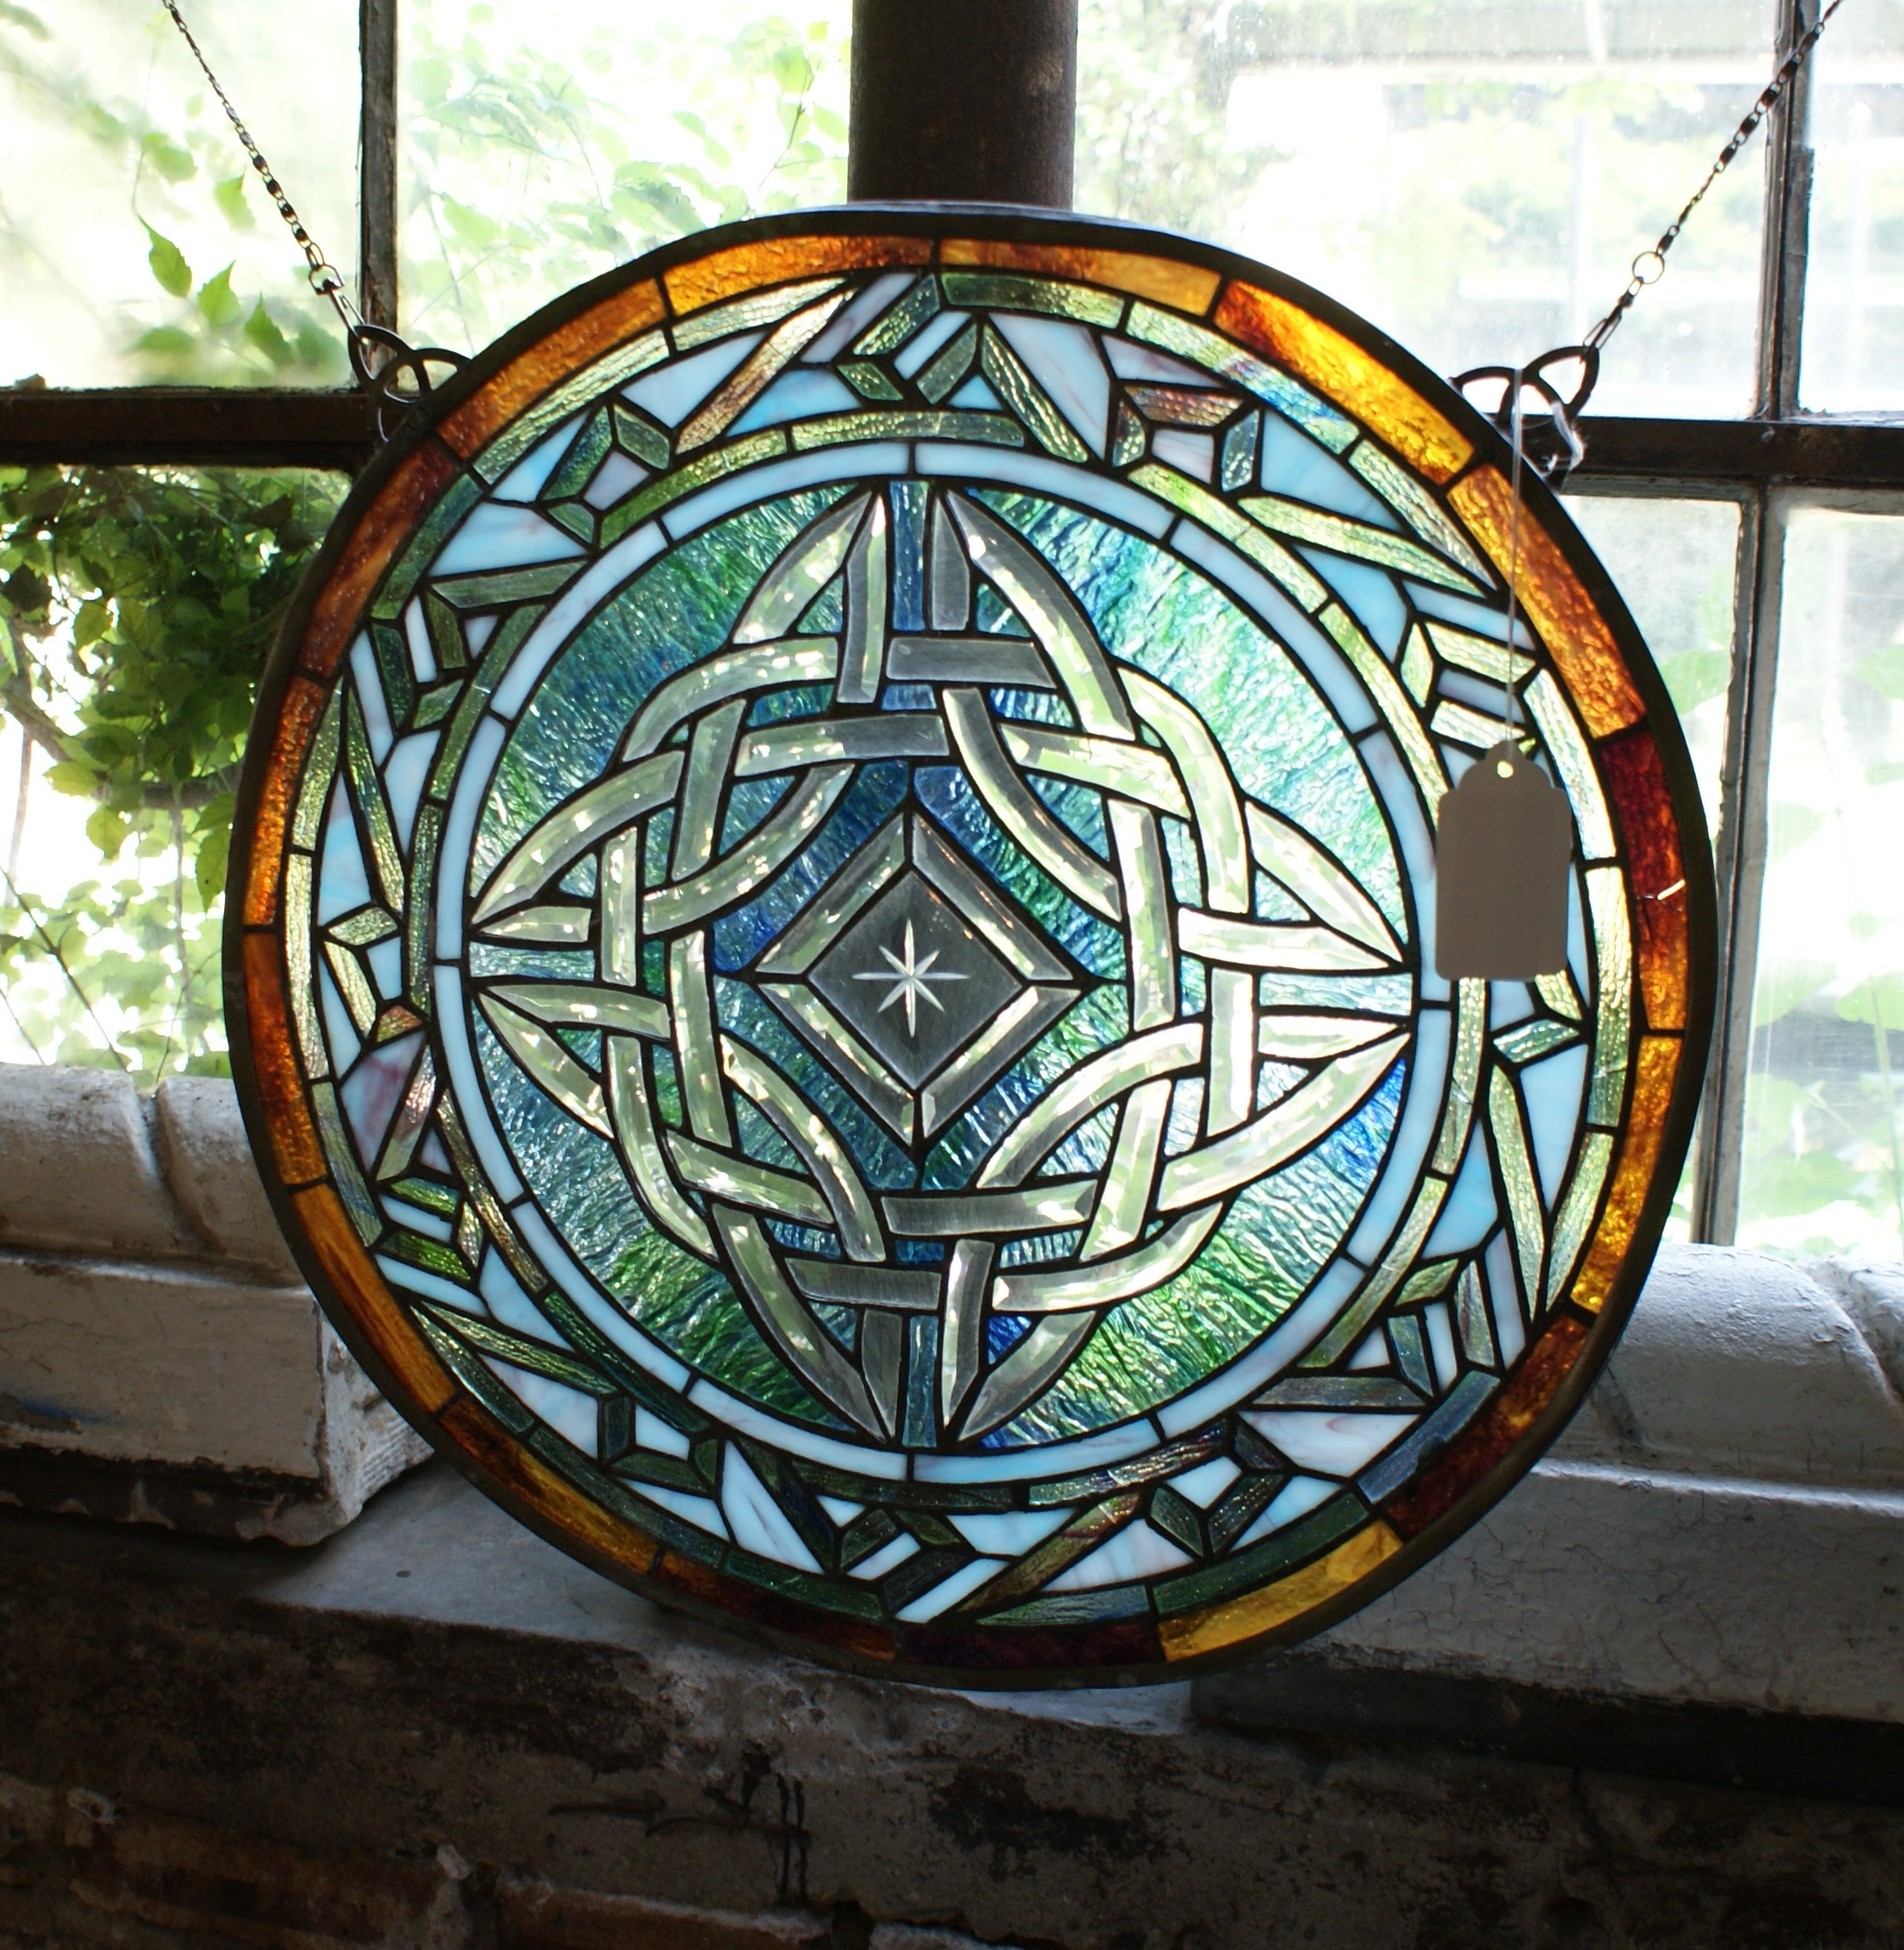 Celtic Knot Circular Stained Glass Window Salvage One : 0830295 from salvageone.com size 2176 x 2228 jpeg 1645kB